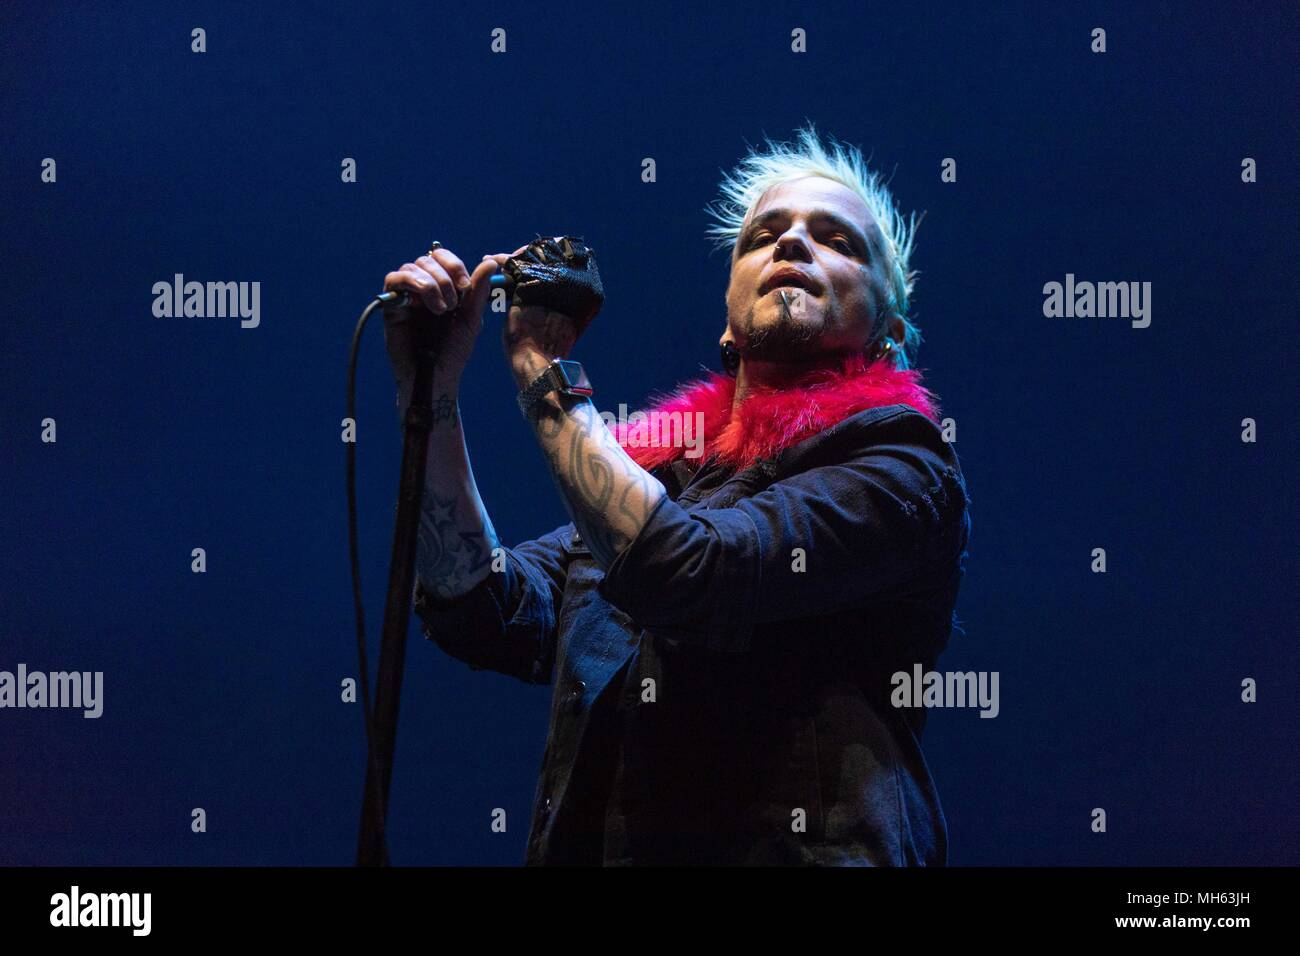 Milwaukee Wisconsin Usa 29th Apr 2018 Lukas Rossi Of Stereo Wiring A New House For Satellite During The This Is Not Sale Tour At Bradley Center In Credit Daniel Deslover Zuma Wire Alamy